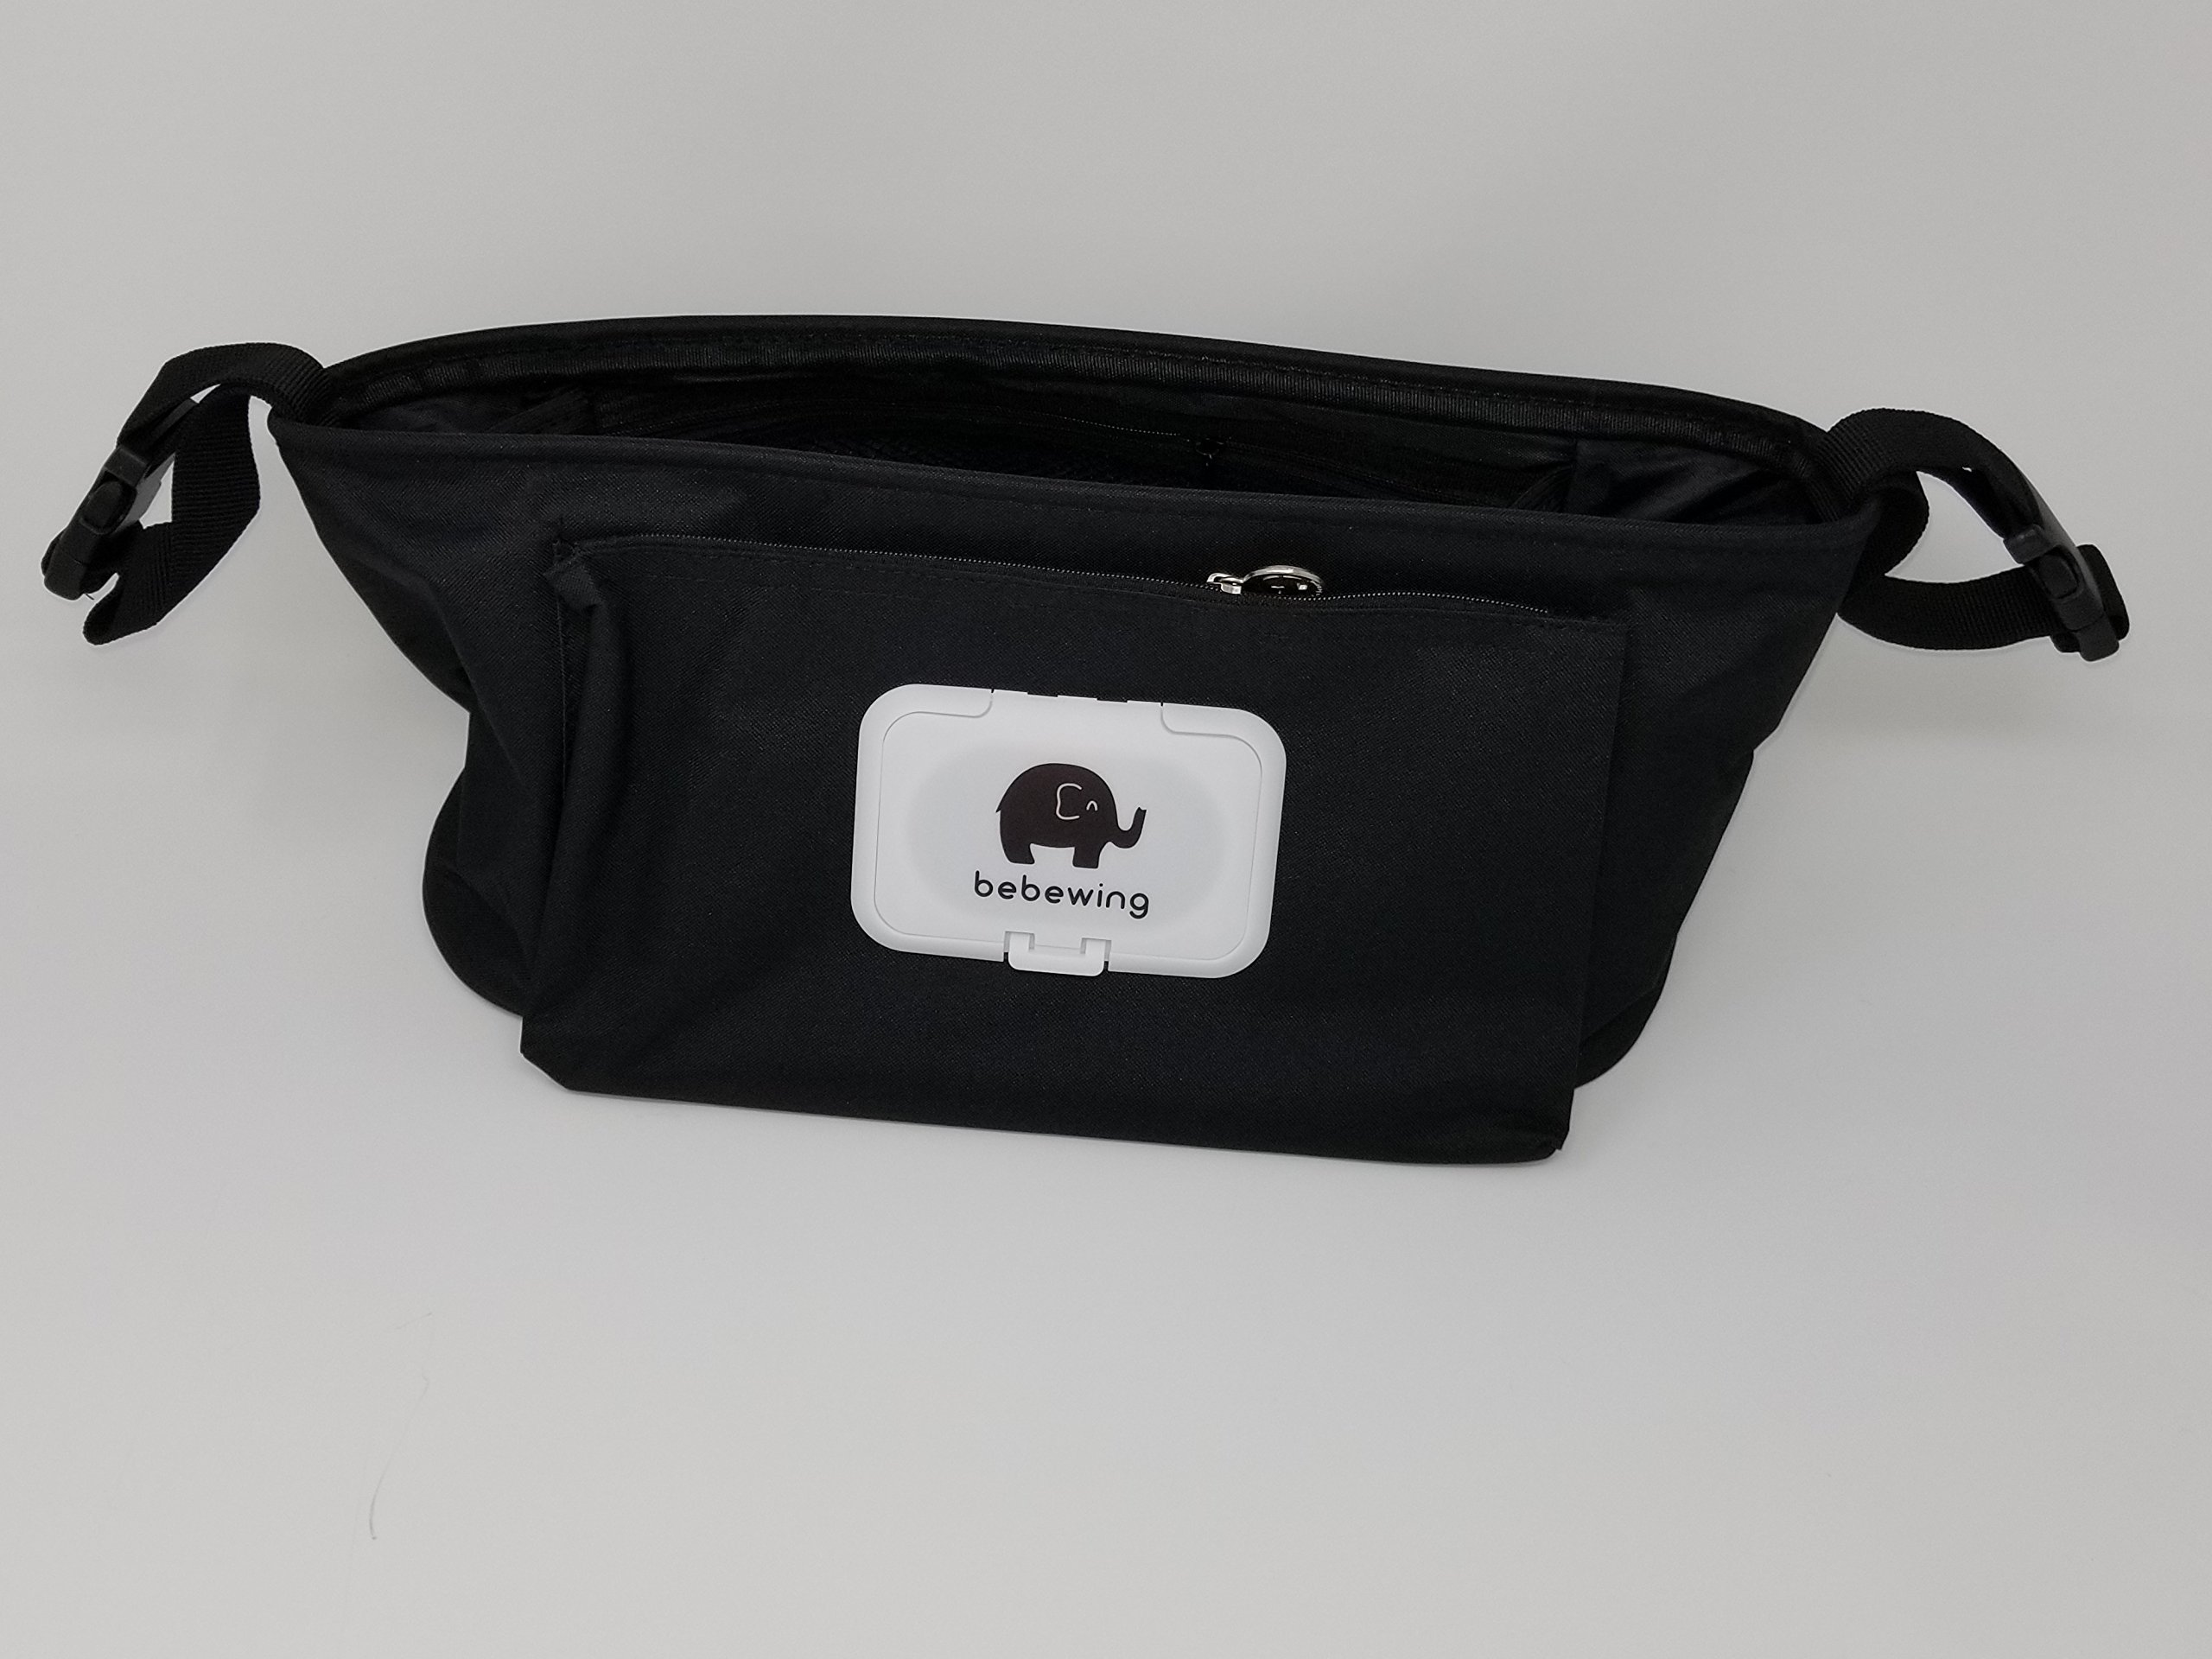 Stroller Organizer with Cup Holders - Baby Wipes Dispenser - Stroller Bag - Mini Diaper Bag - Stroller Accessories